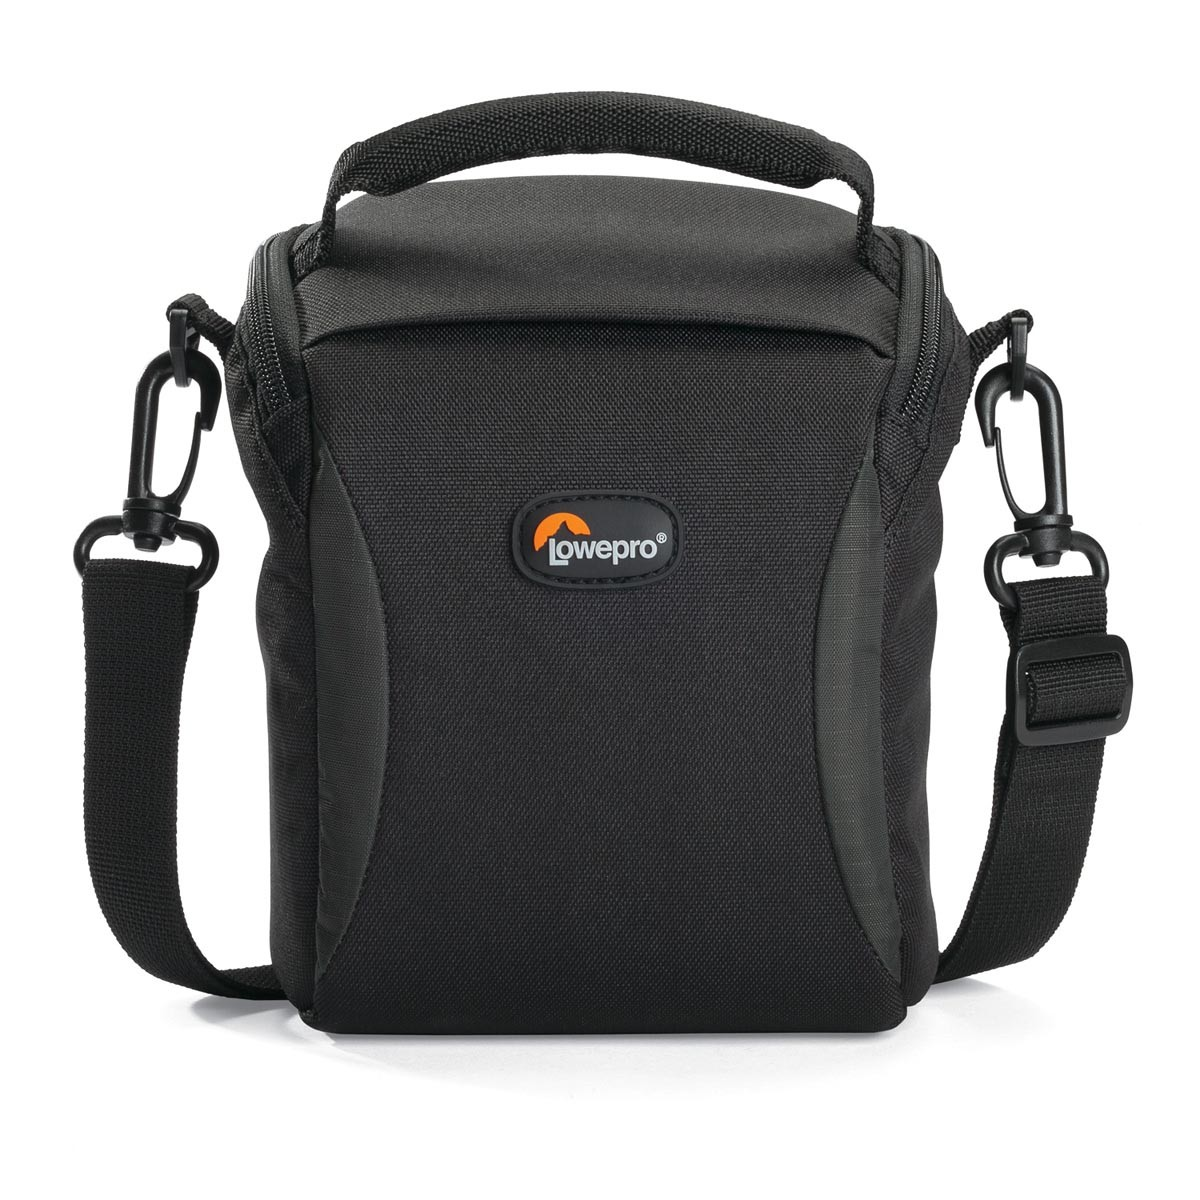 Compact Camera Case Kens Cameras Lowepro Protactic Sh 120 Aw Black Format